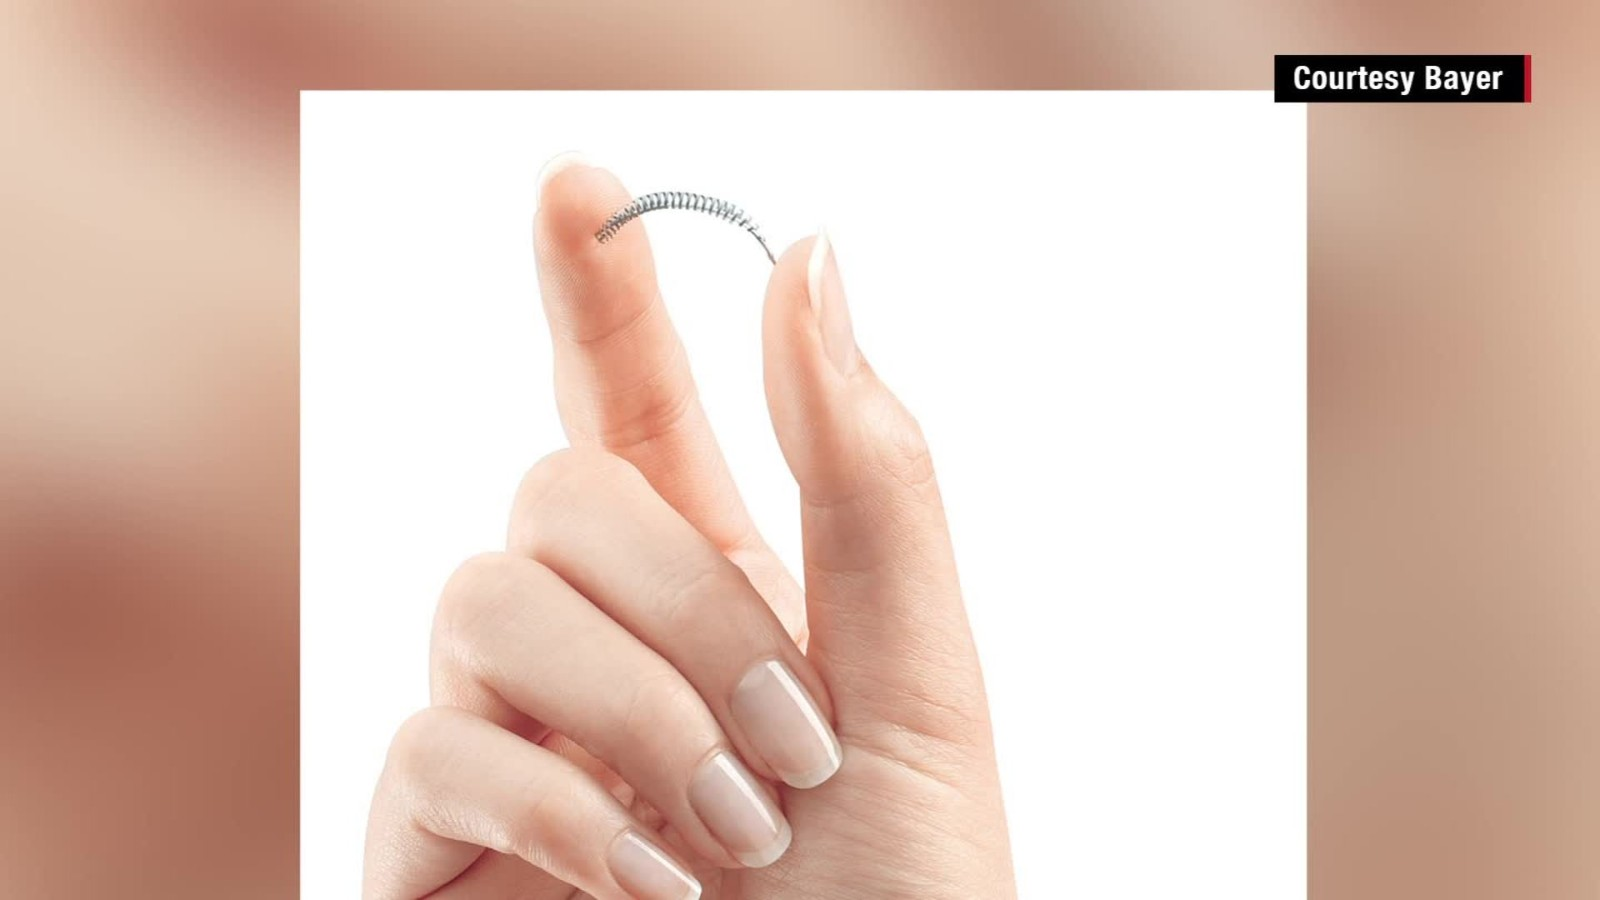 Why my experience with contraceptive Essure Procedure should be a warning tale to all Why my experience with contraceptive Essure Procedure should be a warning tale to all new picture